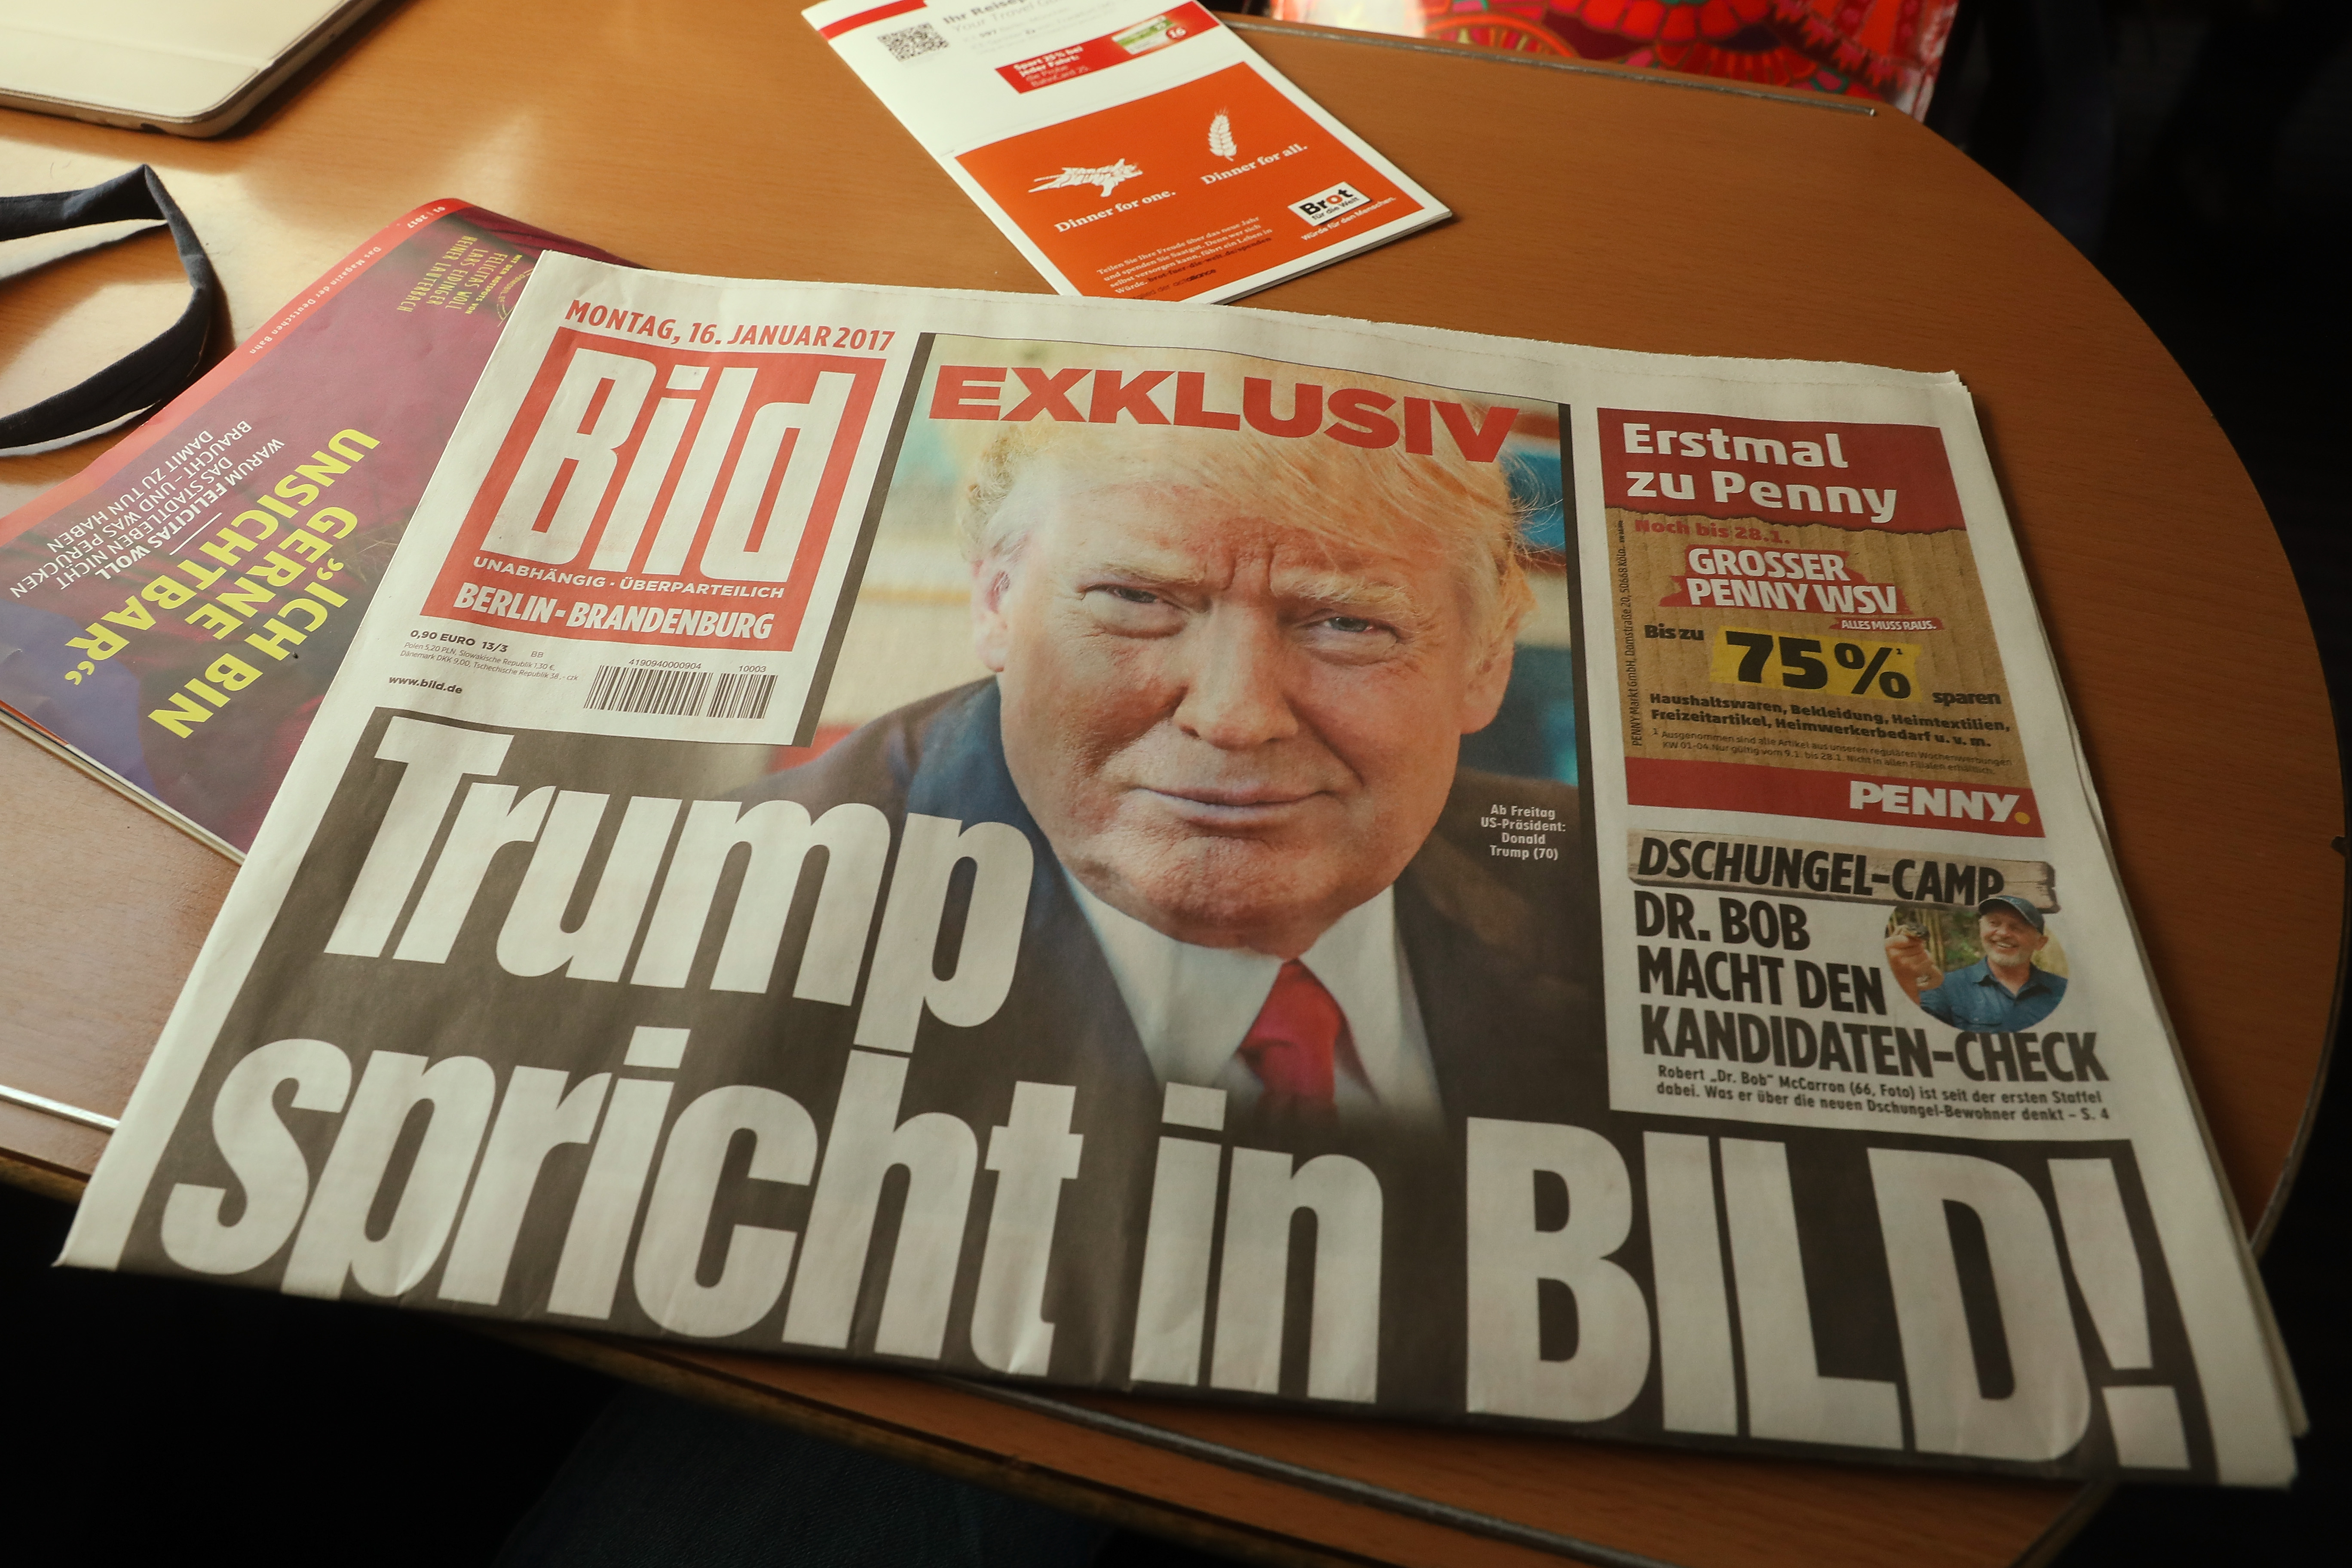 A copy of the January 16 issue of German tabloid Bild Zeitung that features an exclusive interview with U.S. President-elect Donald Trump lies on a table in a train in Berlin, Germany on Jan. 16, 2017.